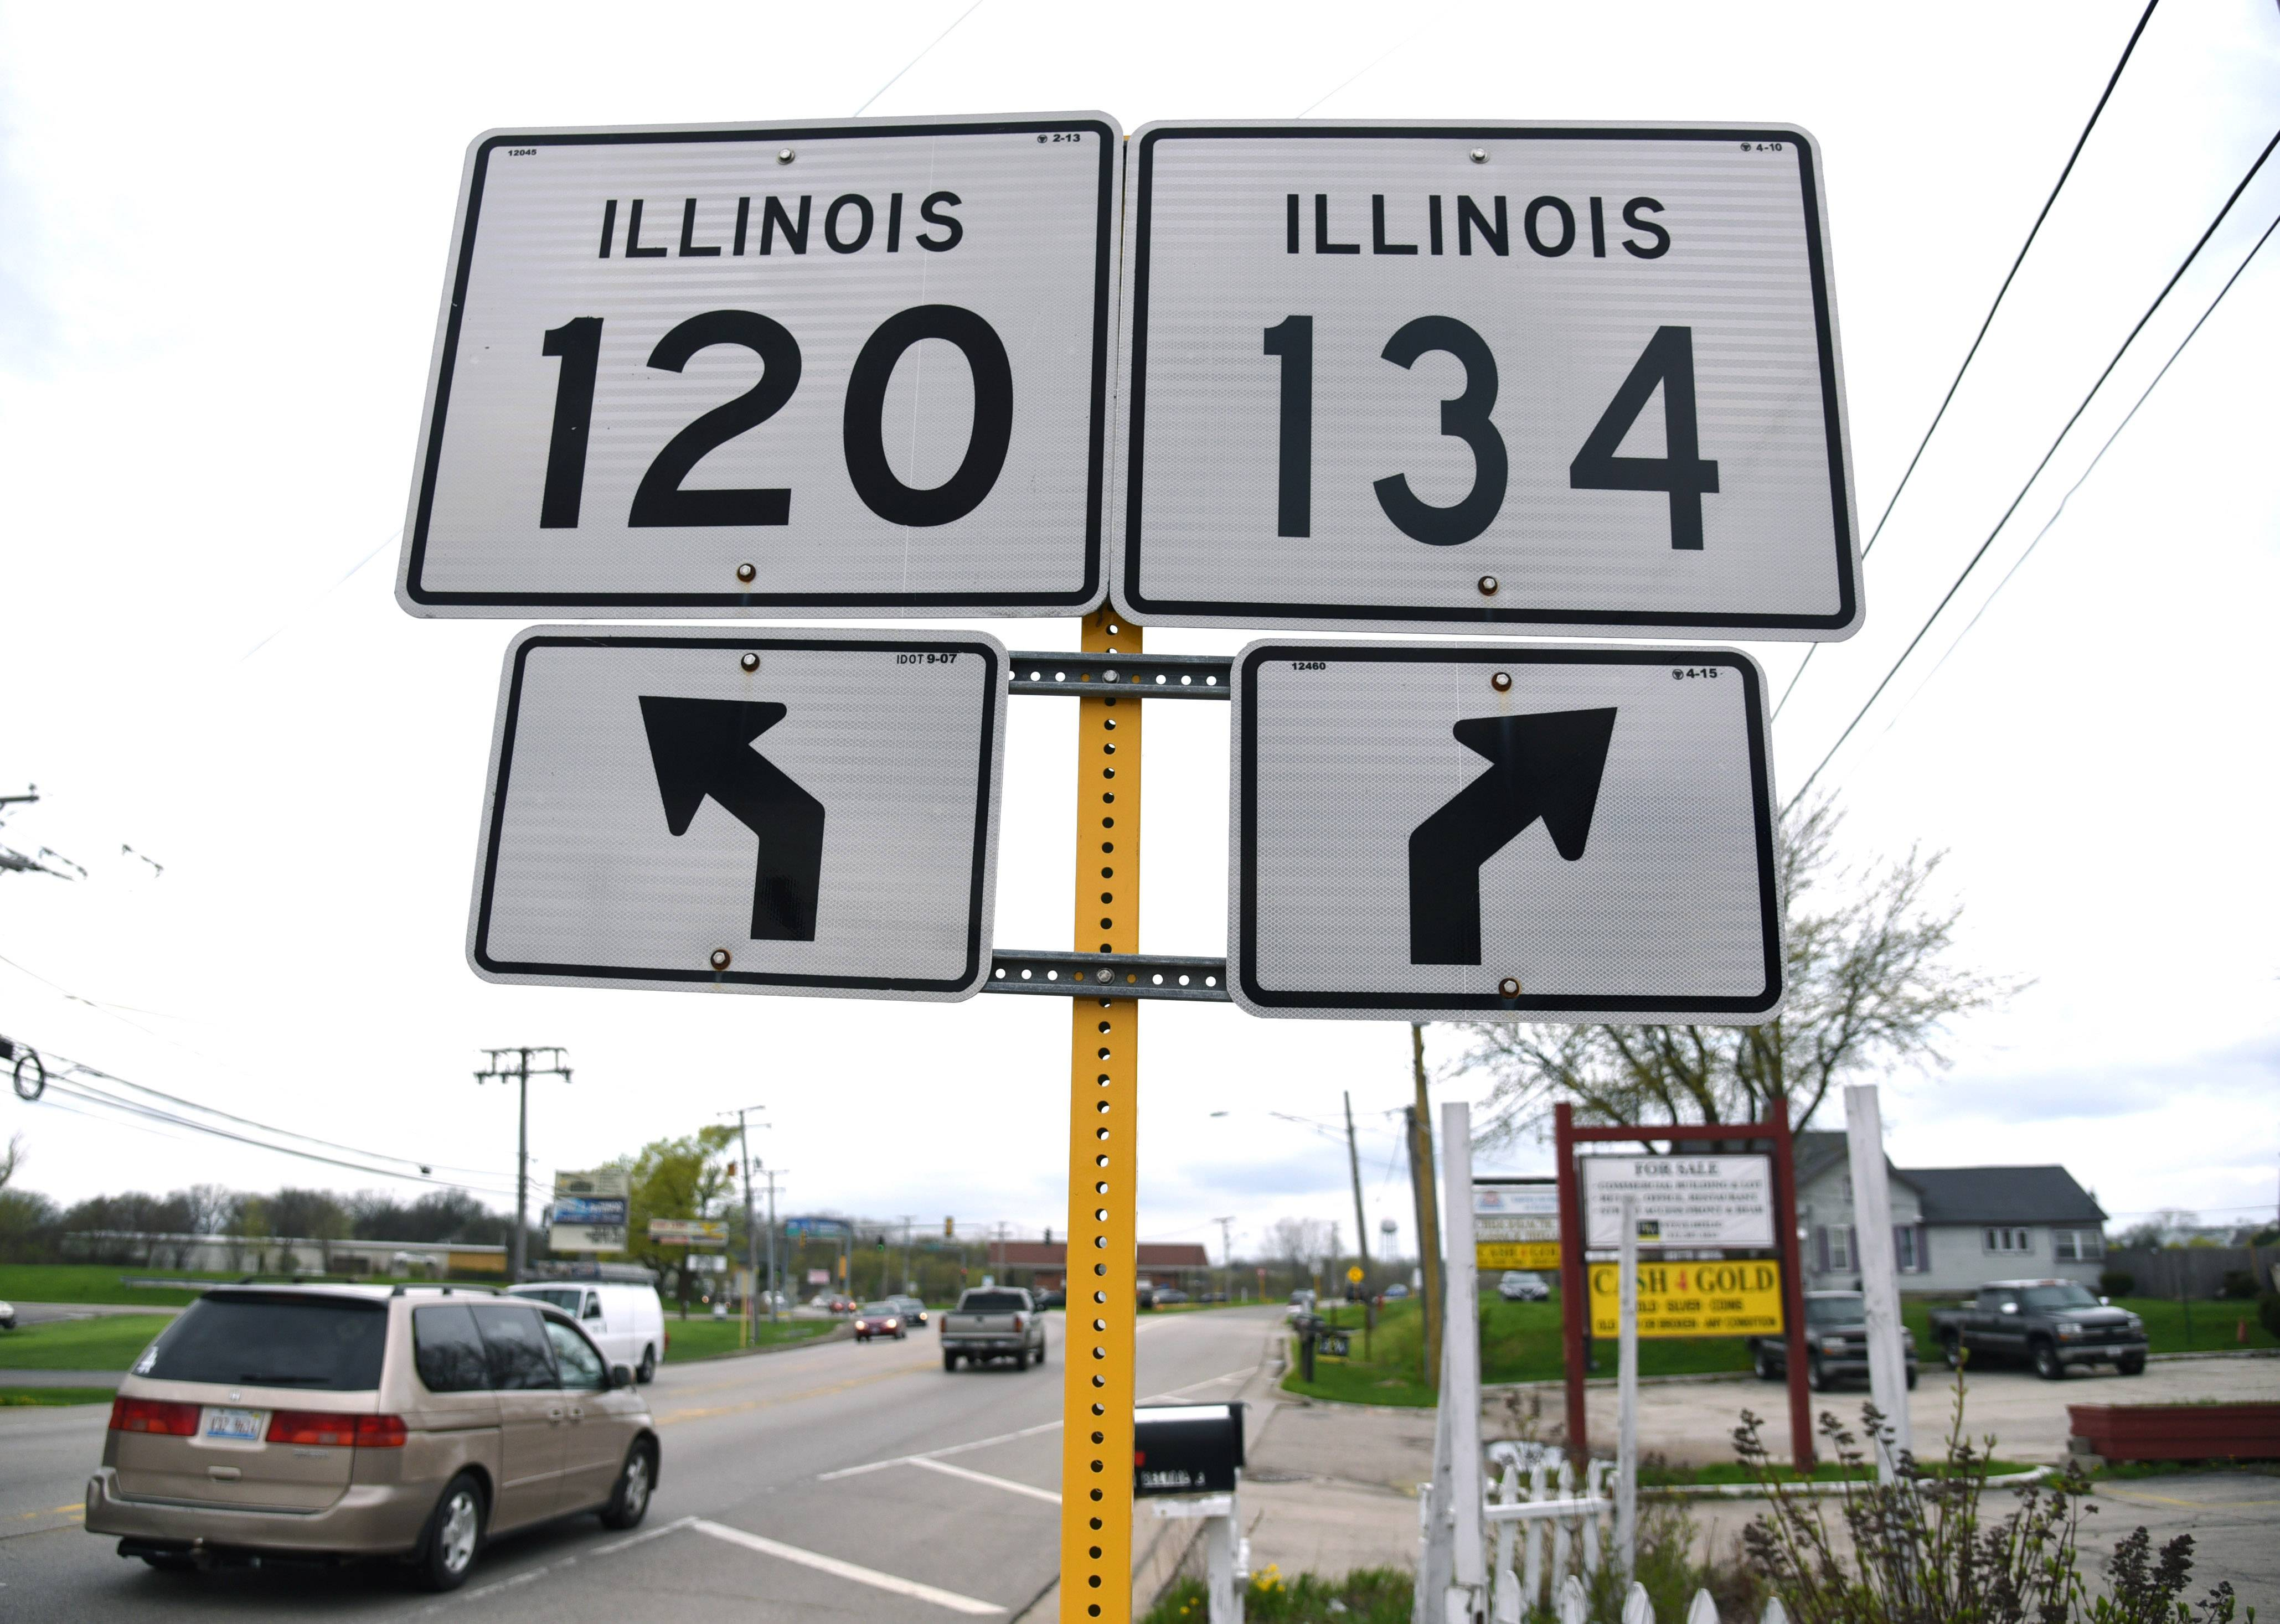 New signals on Route 120 at Route 134 are among the projects being undertaken this summer to improve traffic along Route 120 in central Lake County. Community leaders along the corridor are teaming up to discuss the state highway's challenges and find solutions.